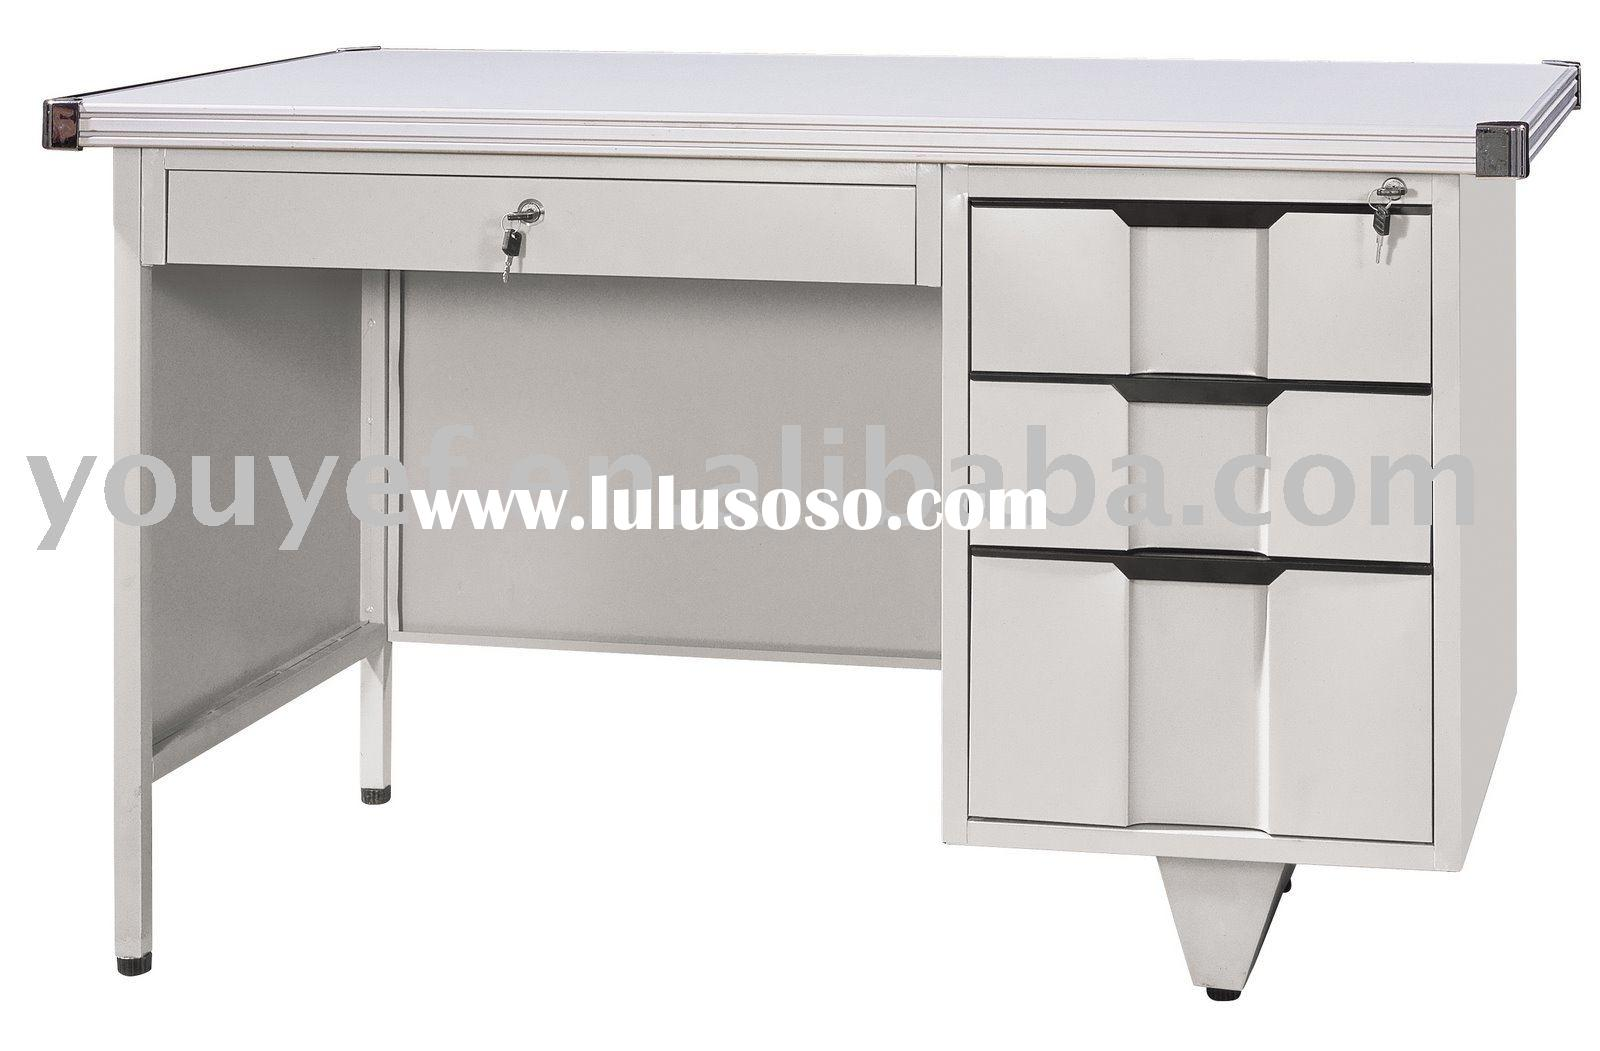 808 hot sale! Modern Style High Quality Wood Office TABLE